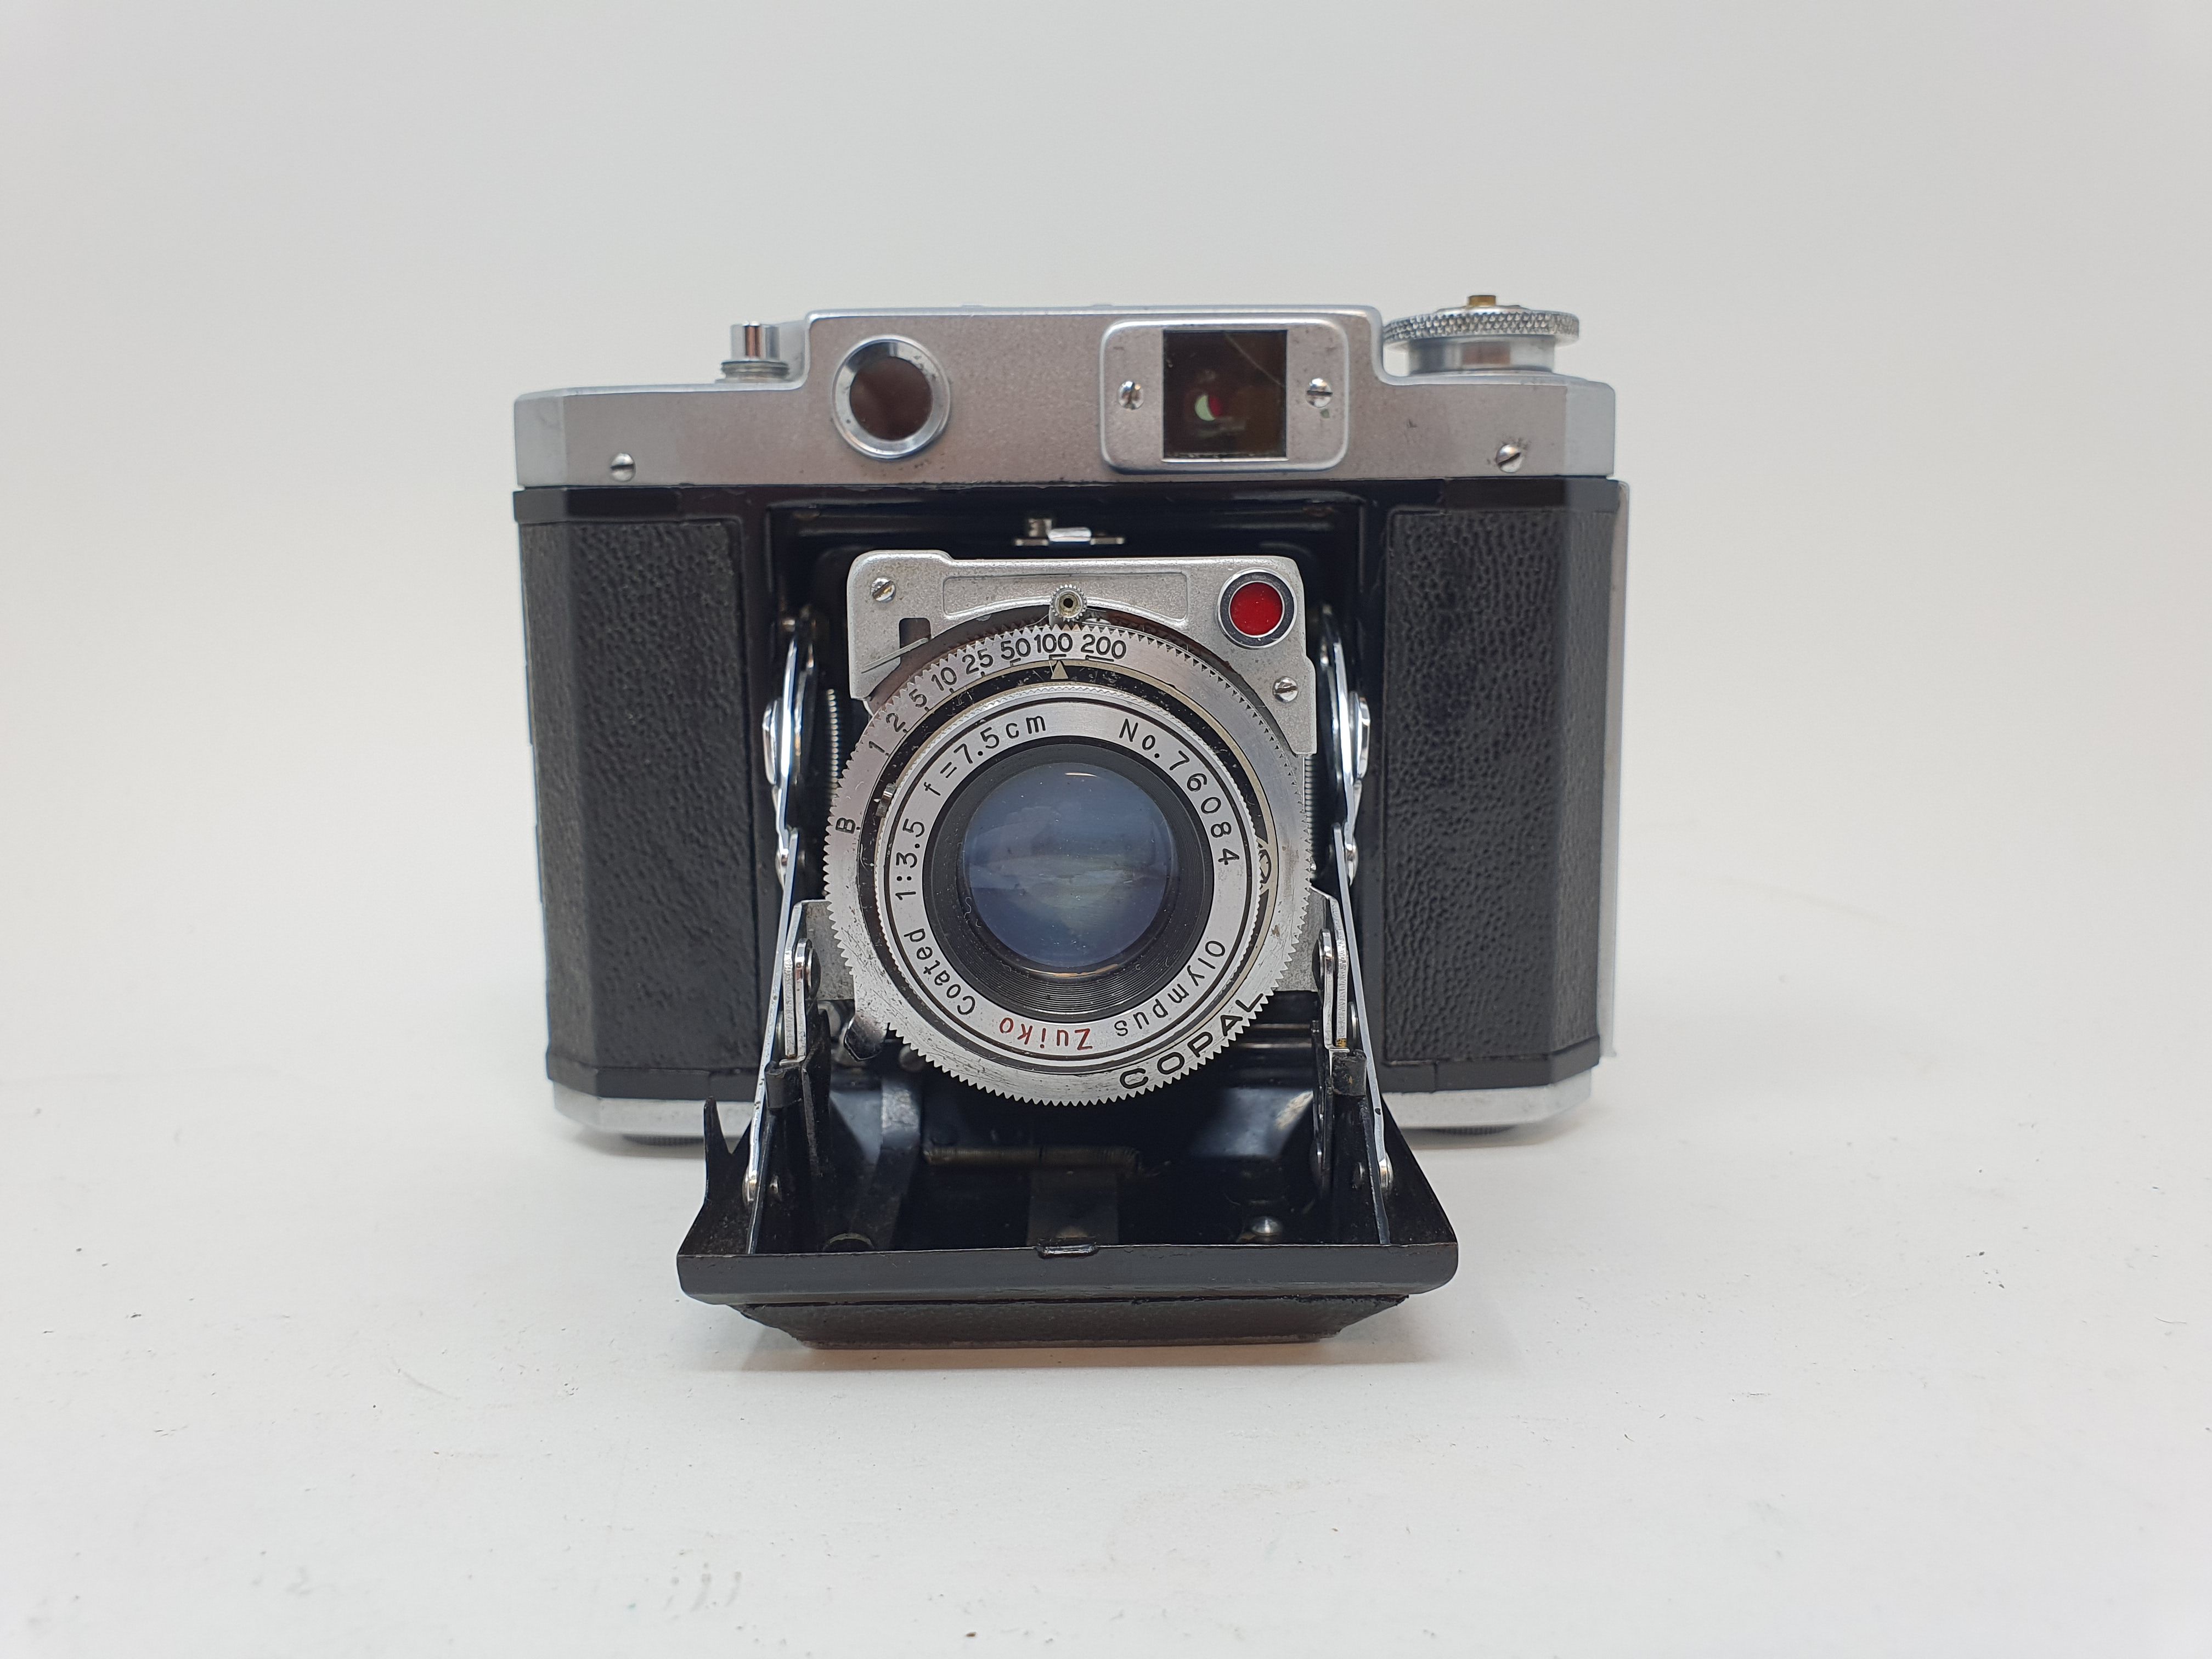 A Mamiya-6 folding camera Provenance: Part of a vast single owner collection of cameras, lenses